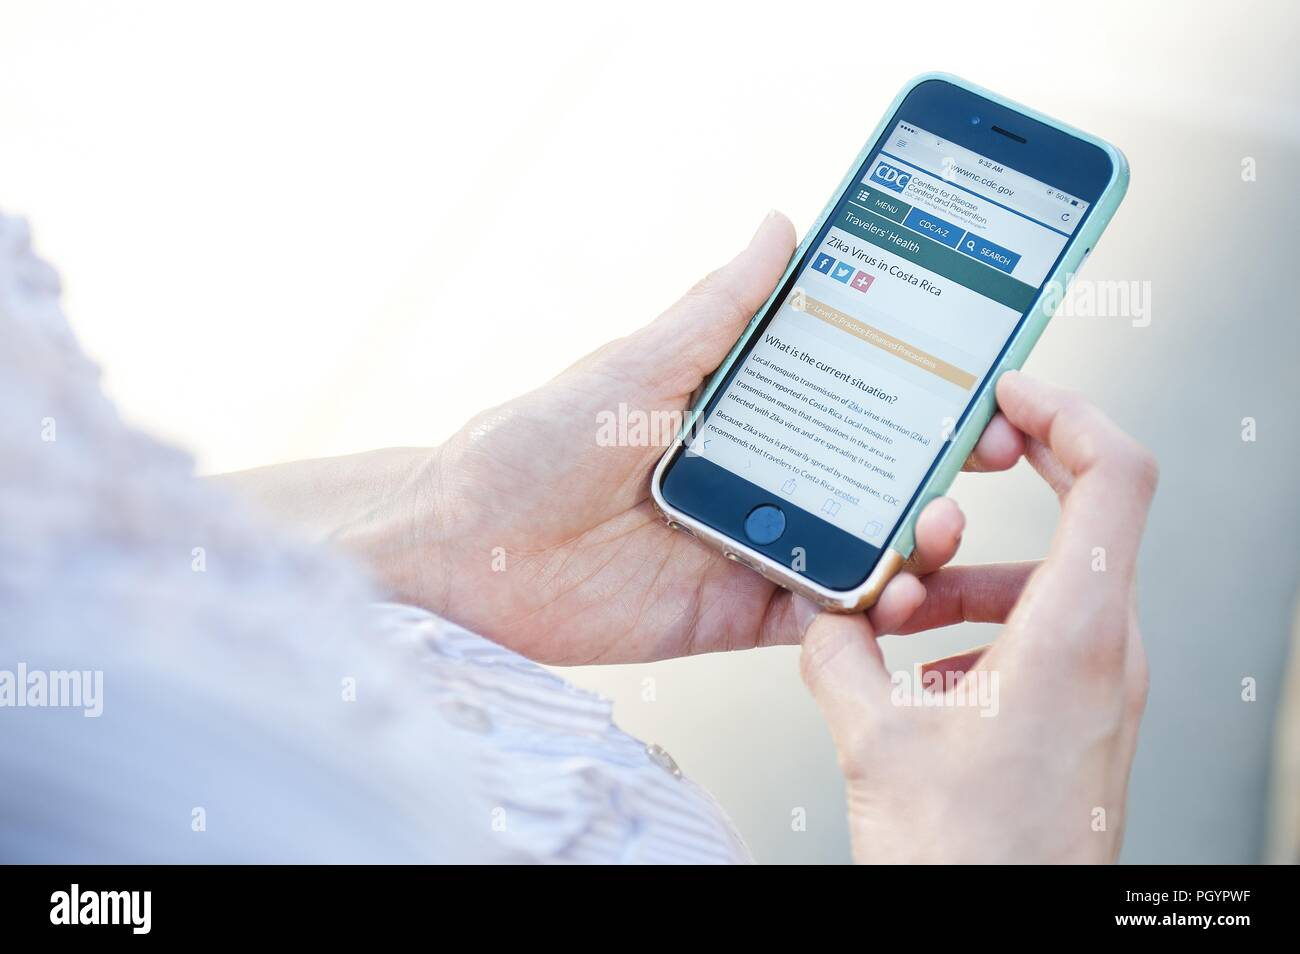 Woman reading about Zika virus in Costa Rica on her smartphone, 2016. Image courtesy Centers for Disease Control (CDC) / National Center for Emerging and Zoonotic Infectious Diseases (NCEZID). () - Stock Image